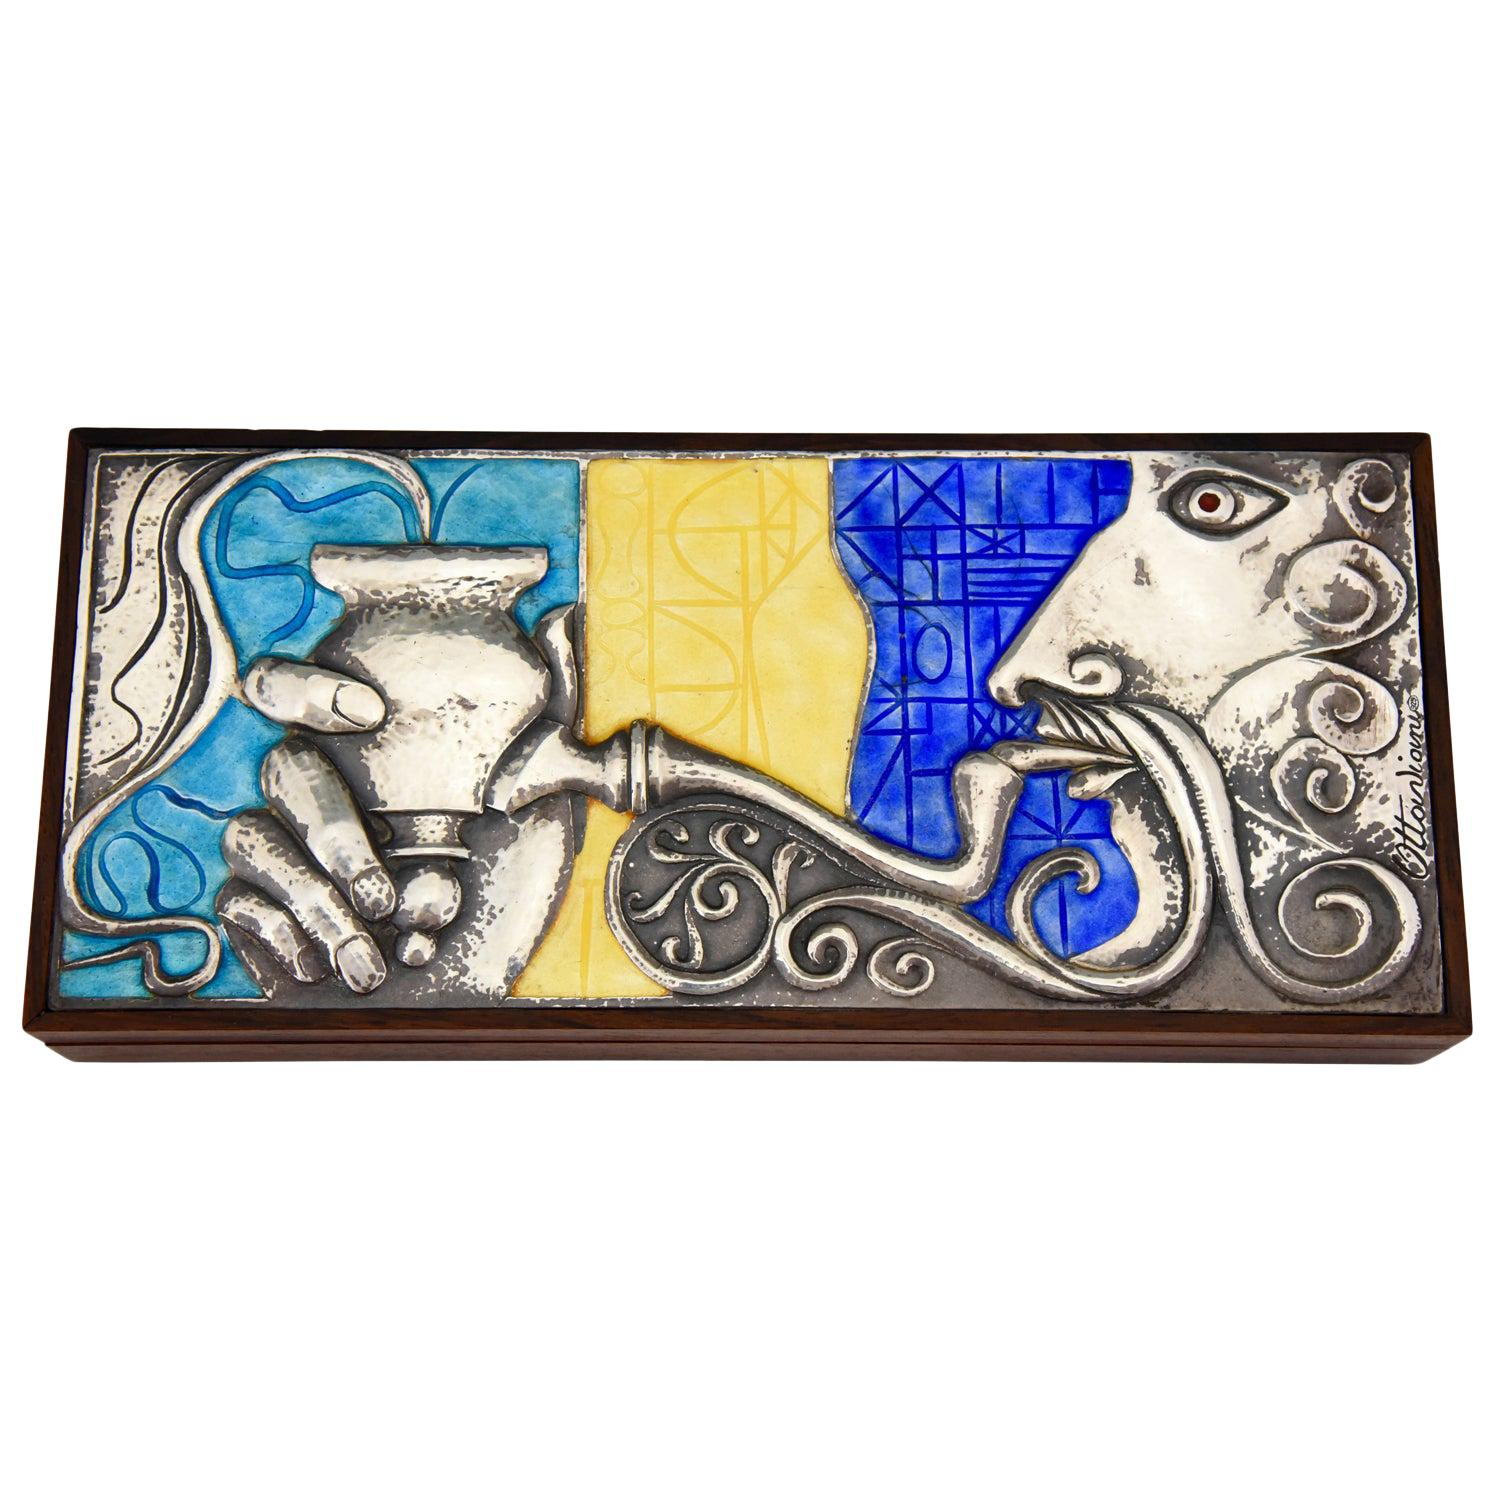 Sterling Silver and Enamel Box with Man Smoking Water Pipe Ottaviani Italy, 1960